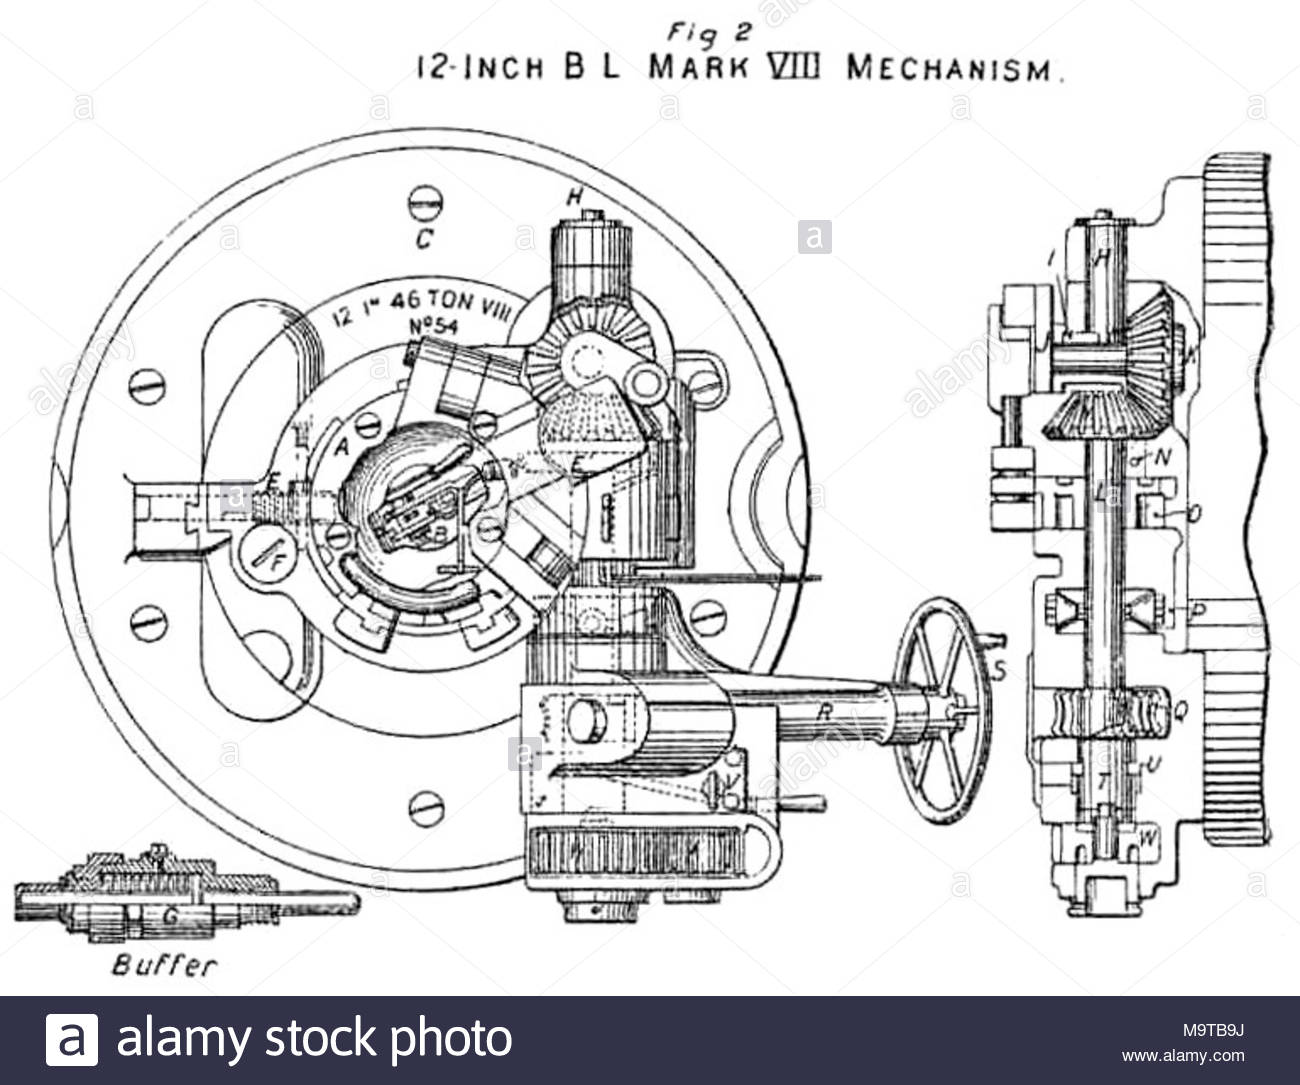 Diagram showing breech mechanism of british bl 12 inch mk viii naval diagram showing breech mechanism of british bl 12 inch mk viii naval gun a bronze end plate with handle at bottom for withdrawing ccuart Images